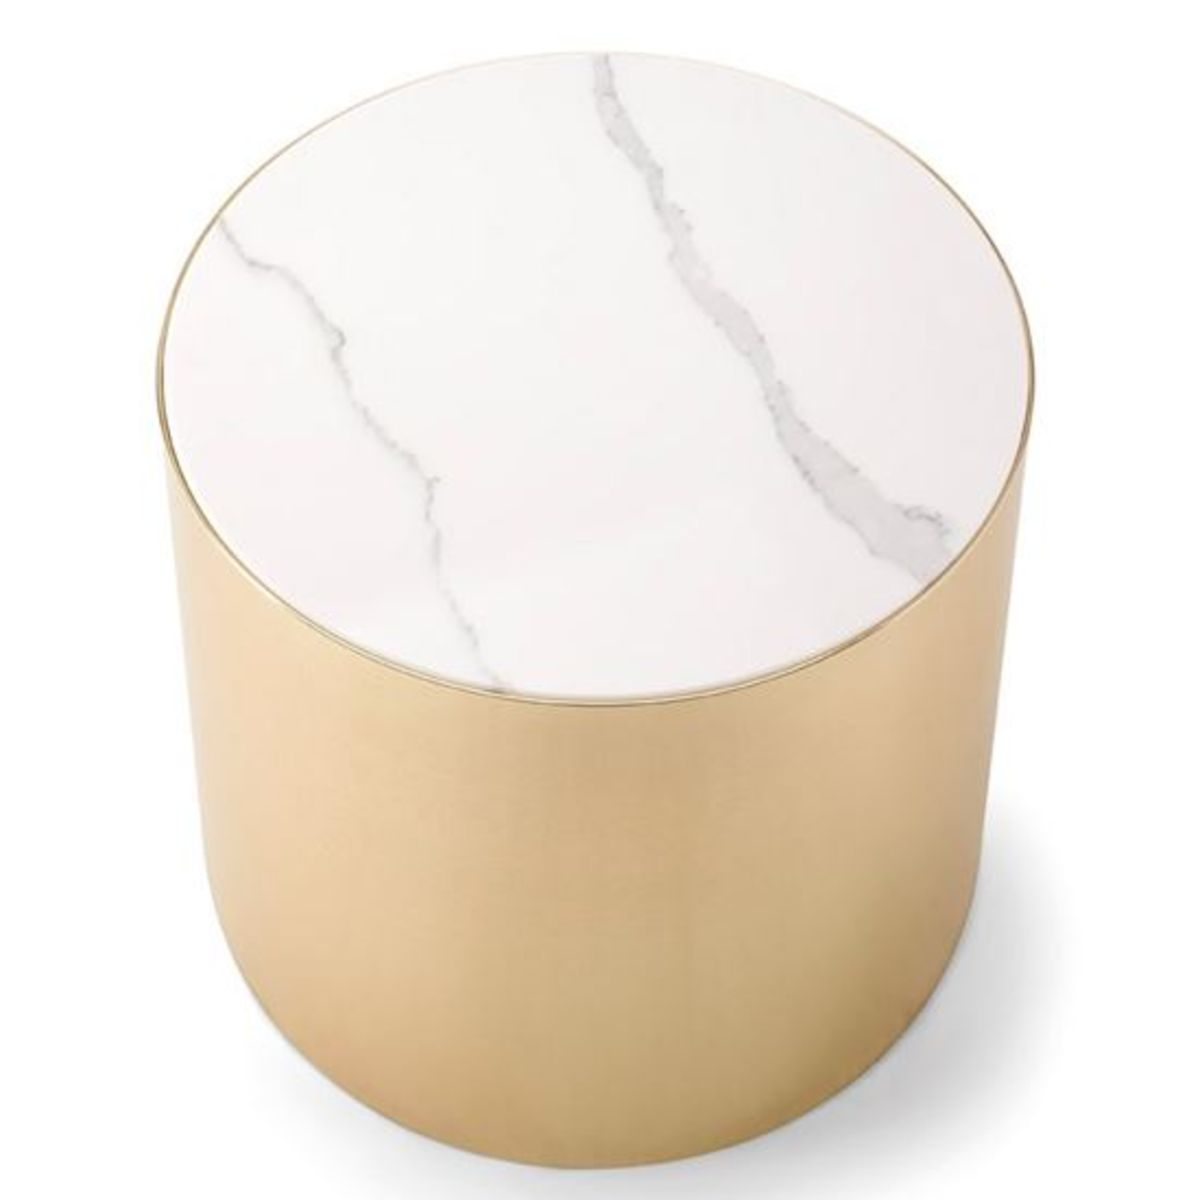 A photo of the Alexander side table